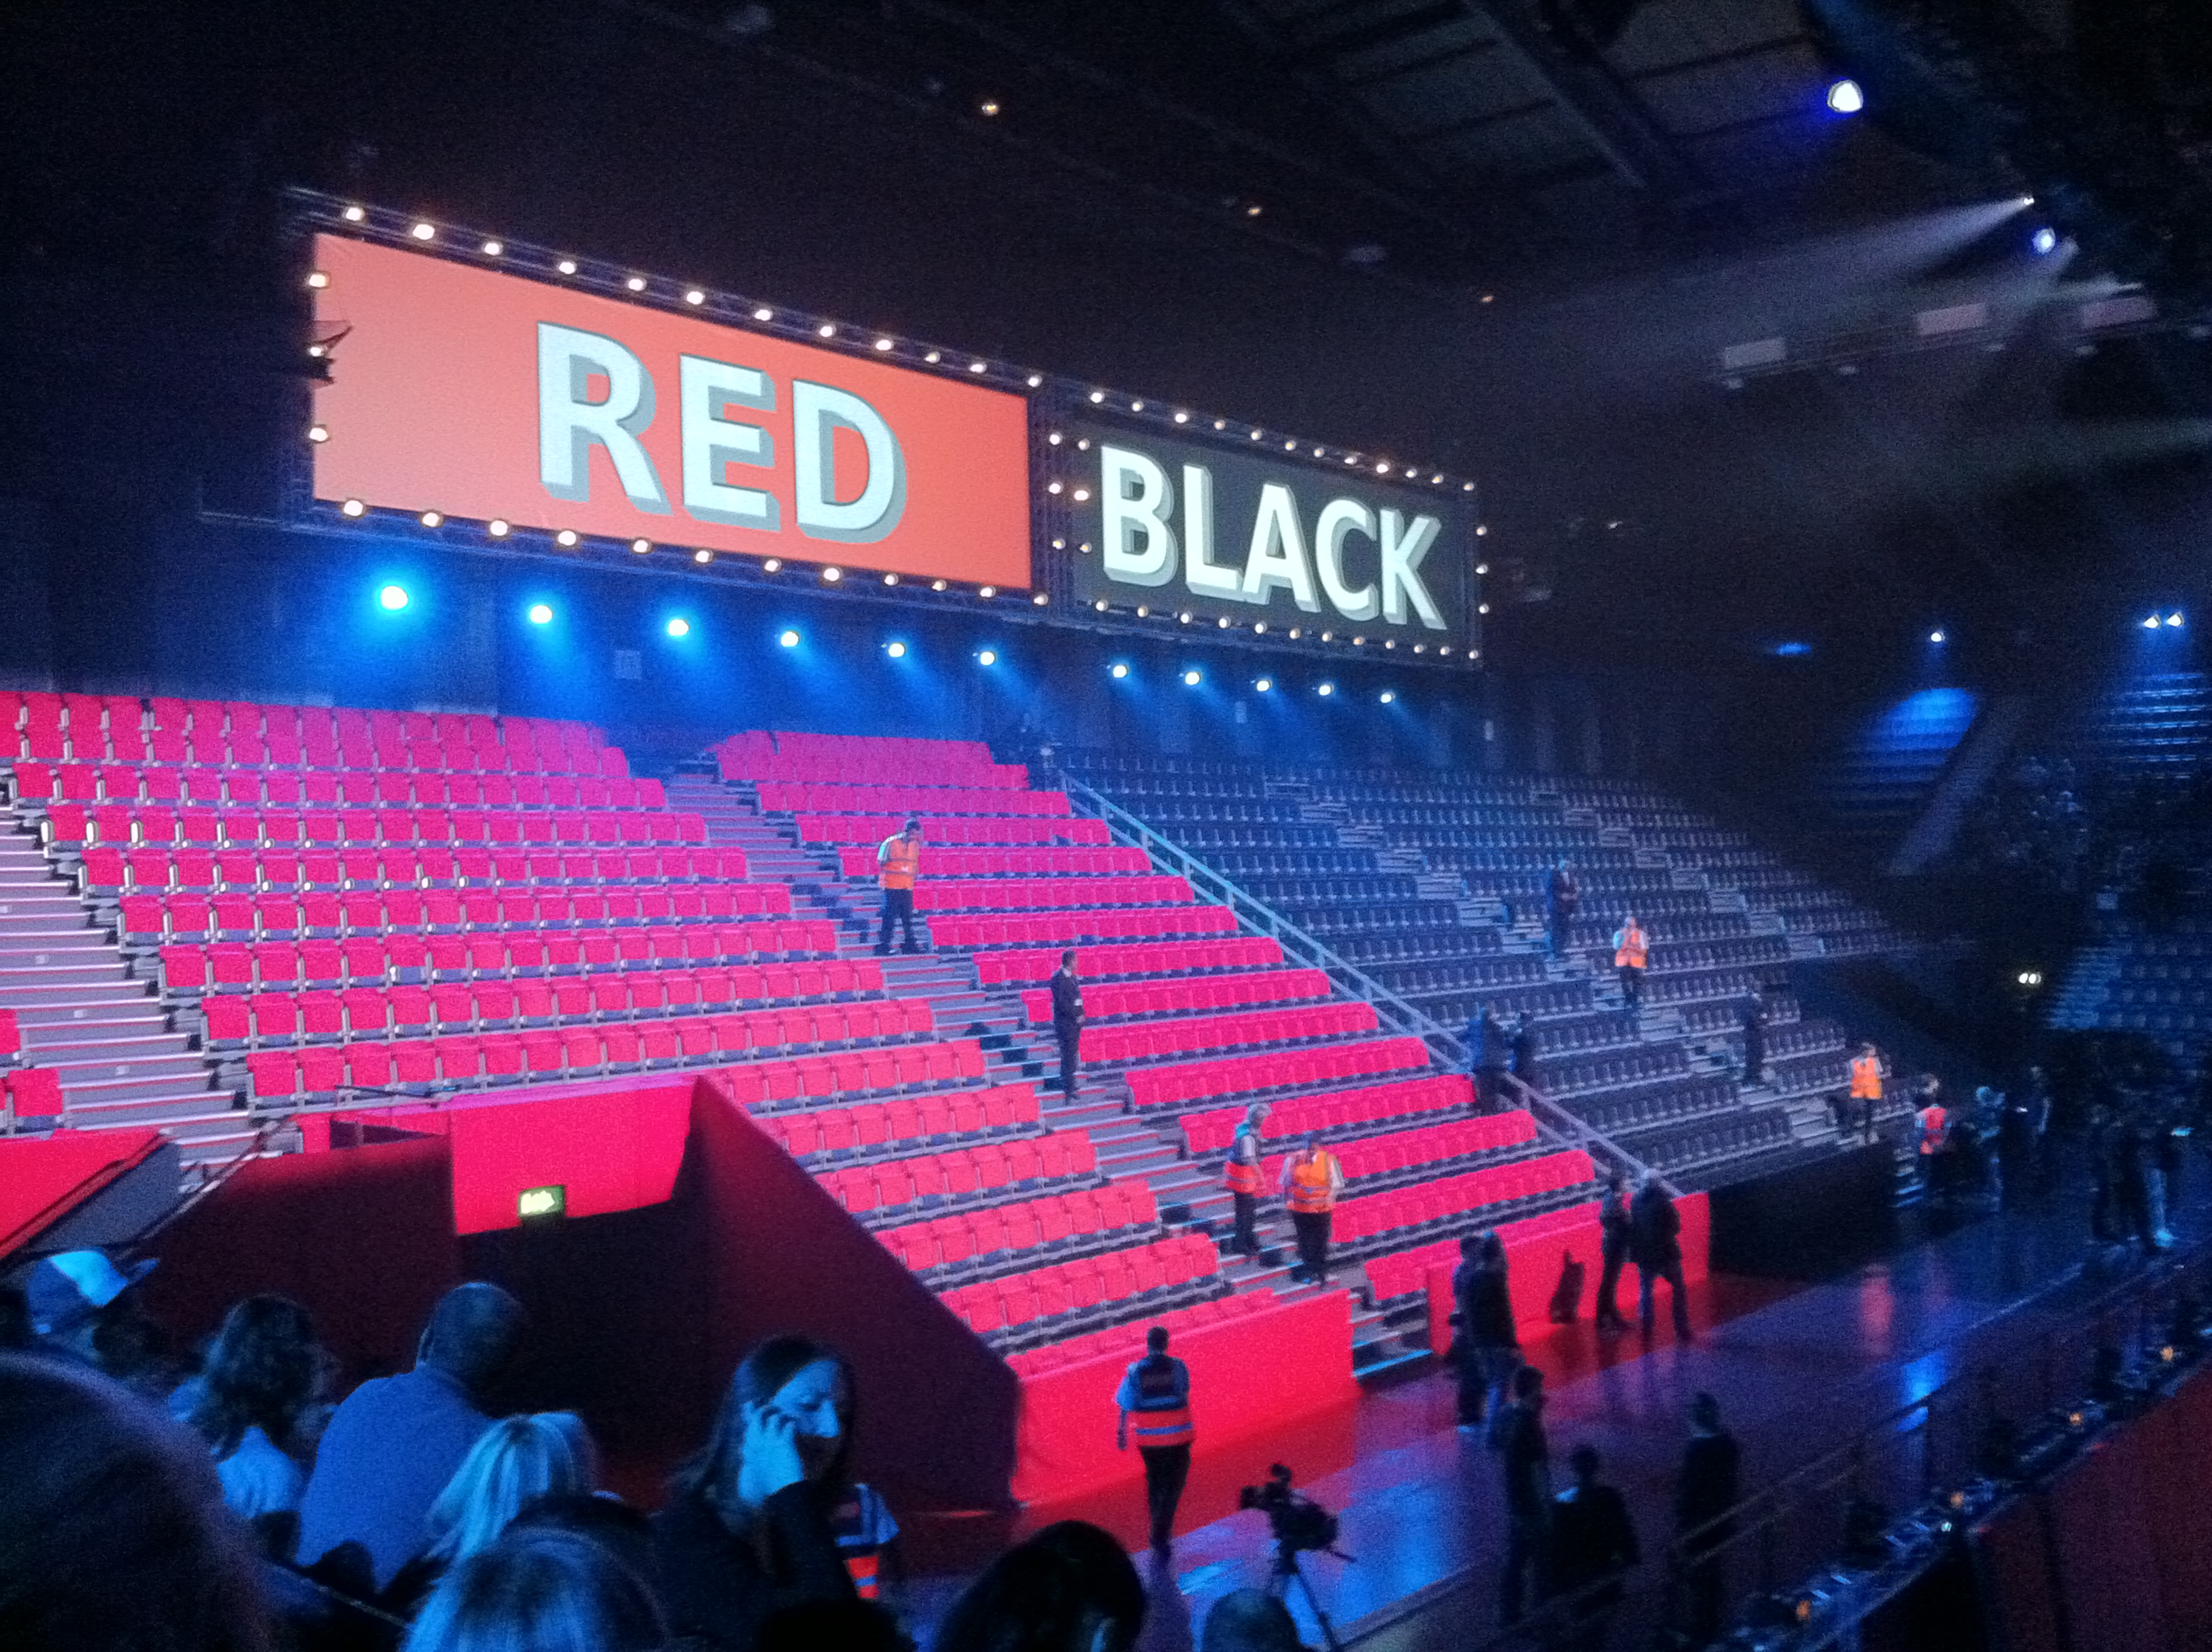 Red or Black?, le novità del game show di RaiUno condotto da Frizzi e Cirilli